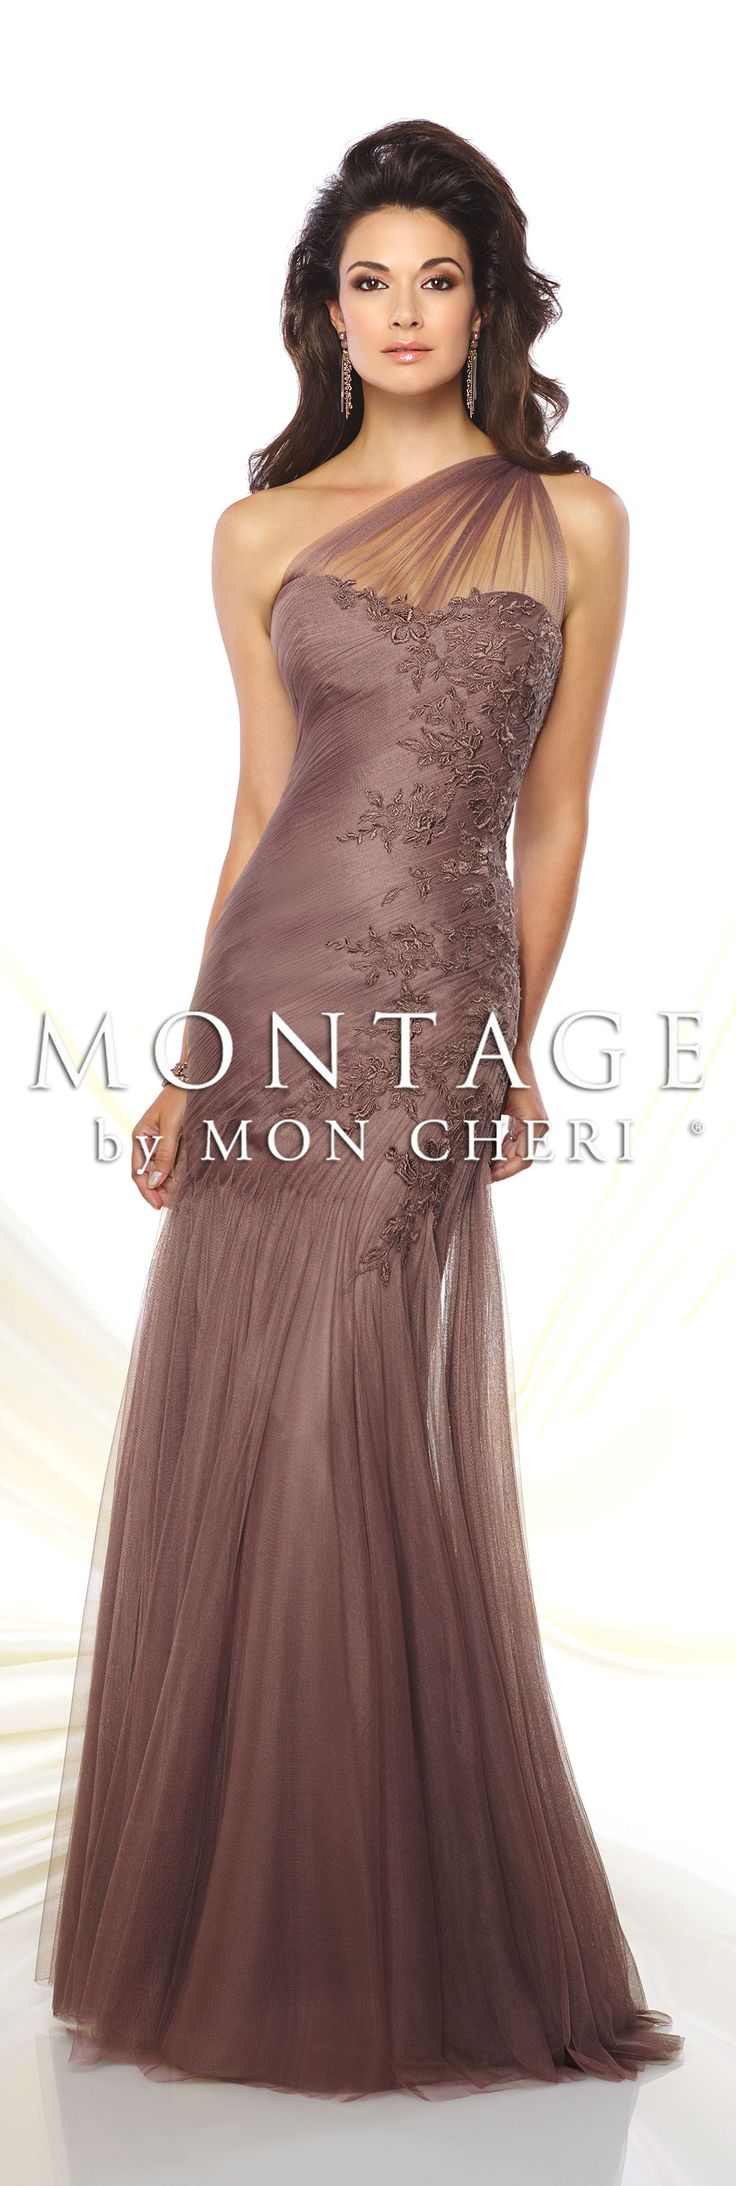 Sophisticated Mother of the Bride Dresses 2018 by Mon Cheri